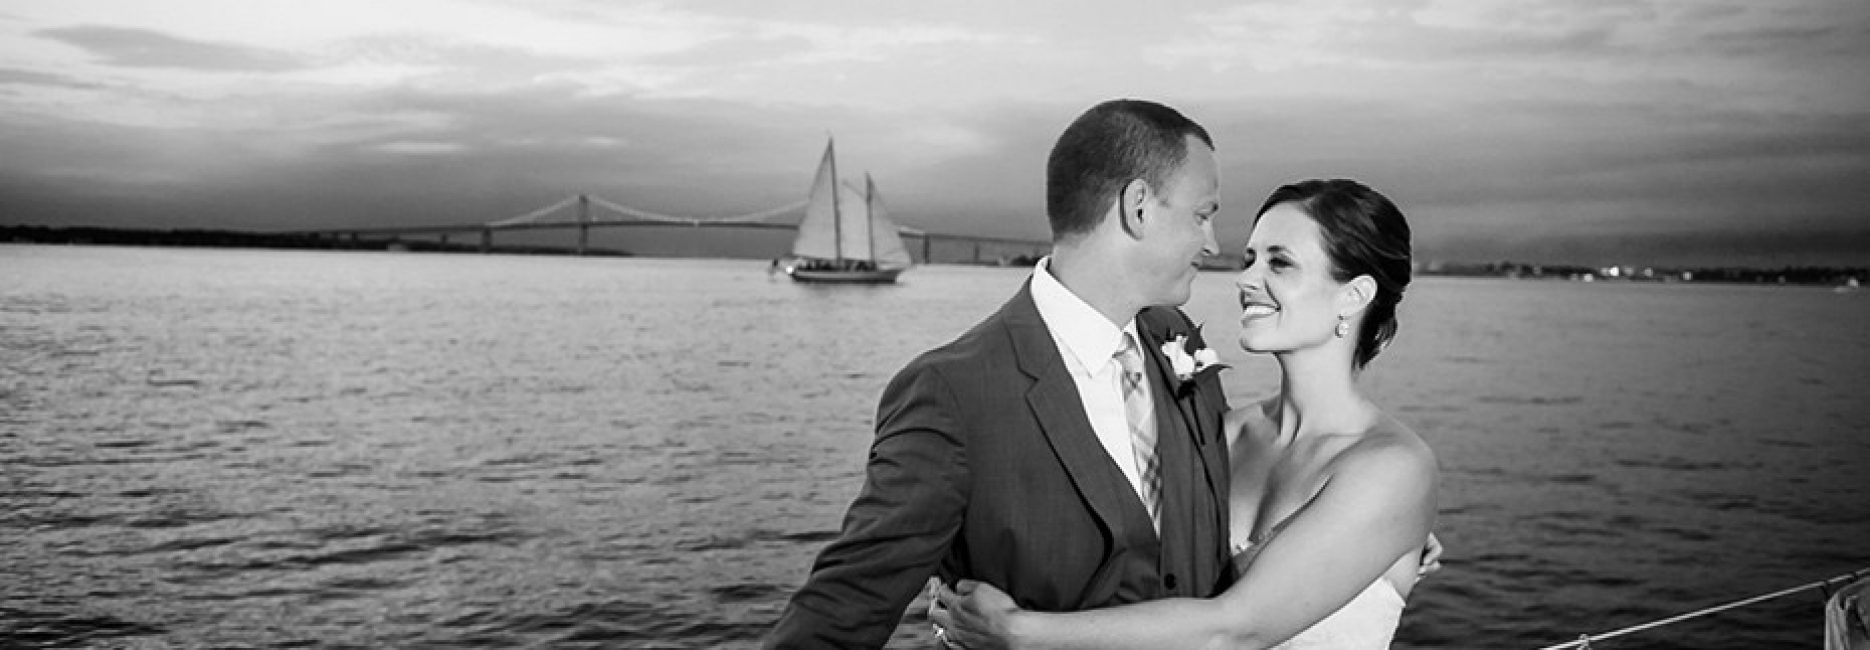 Pre & Post Wedding Sails For Your Guests!